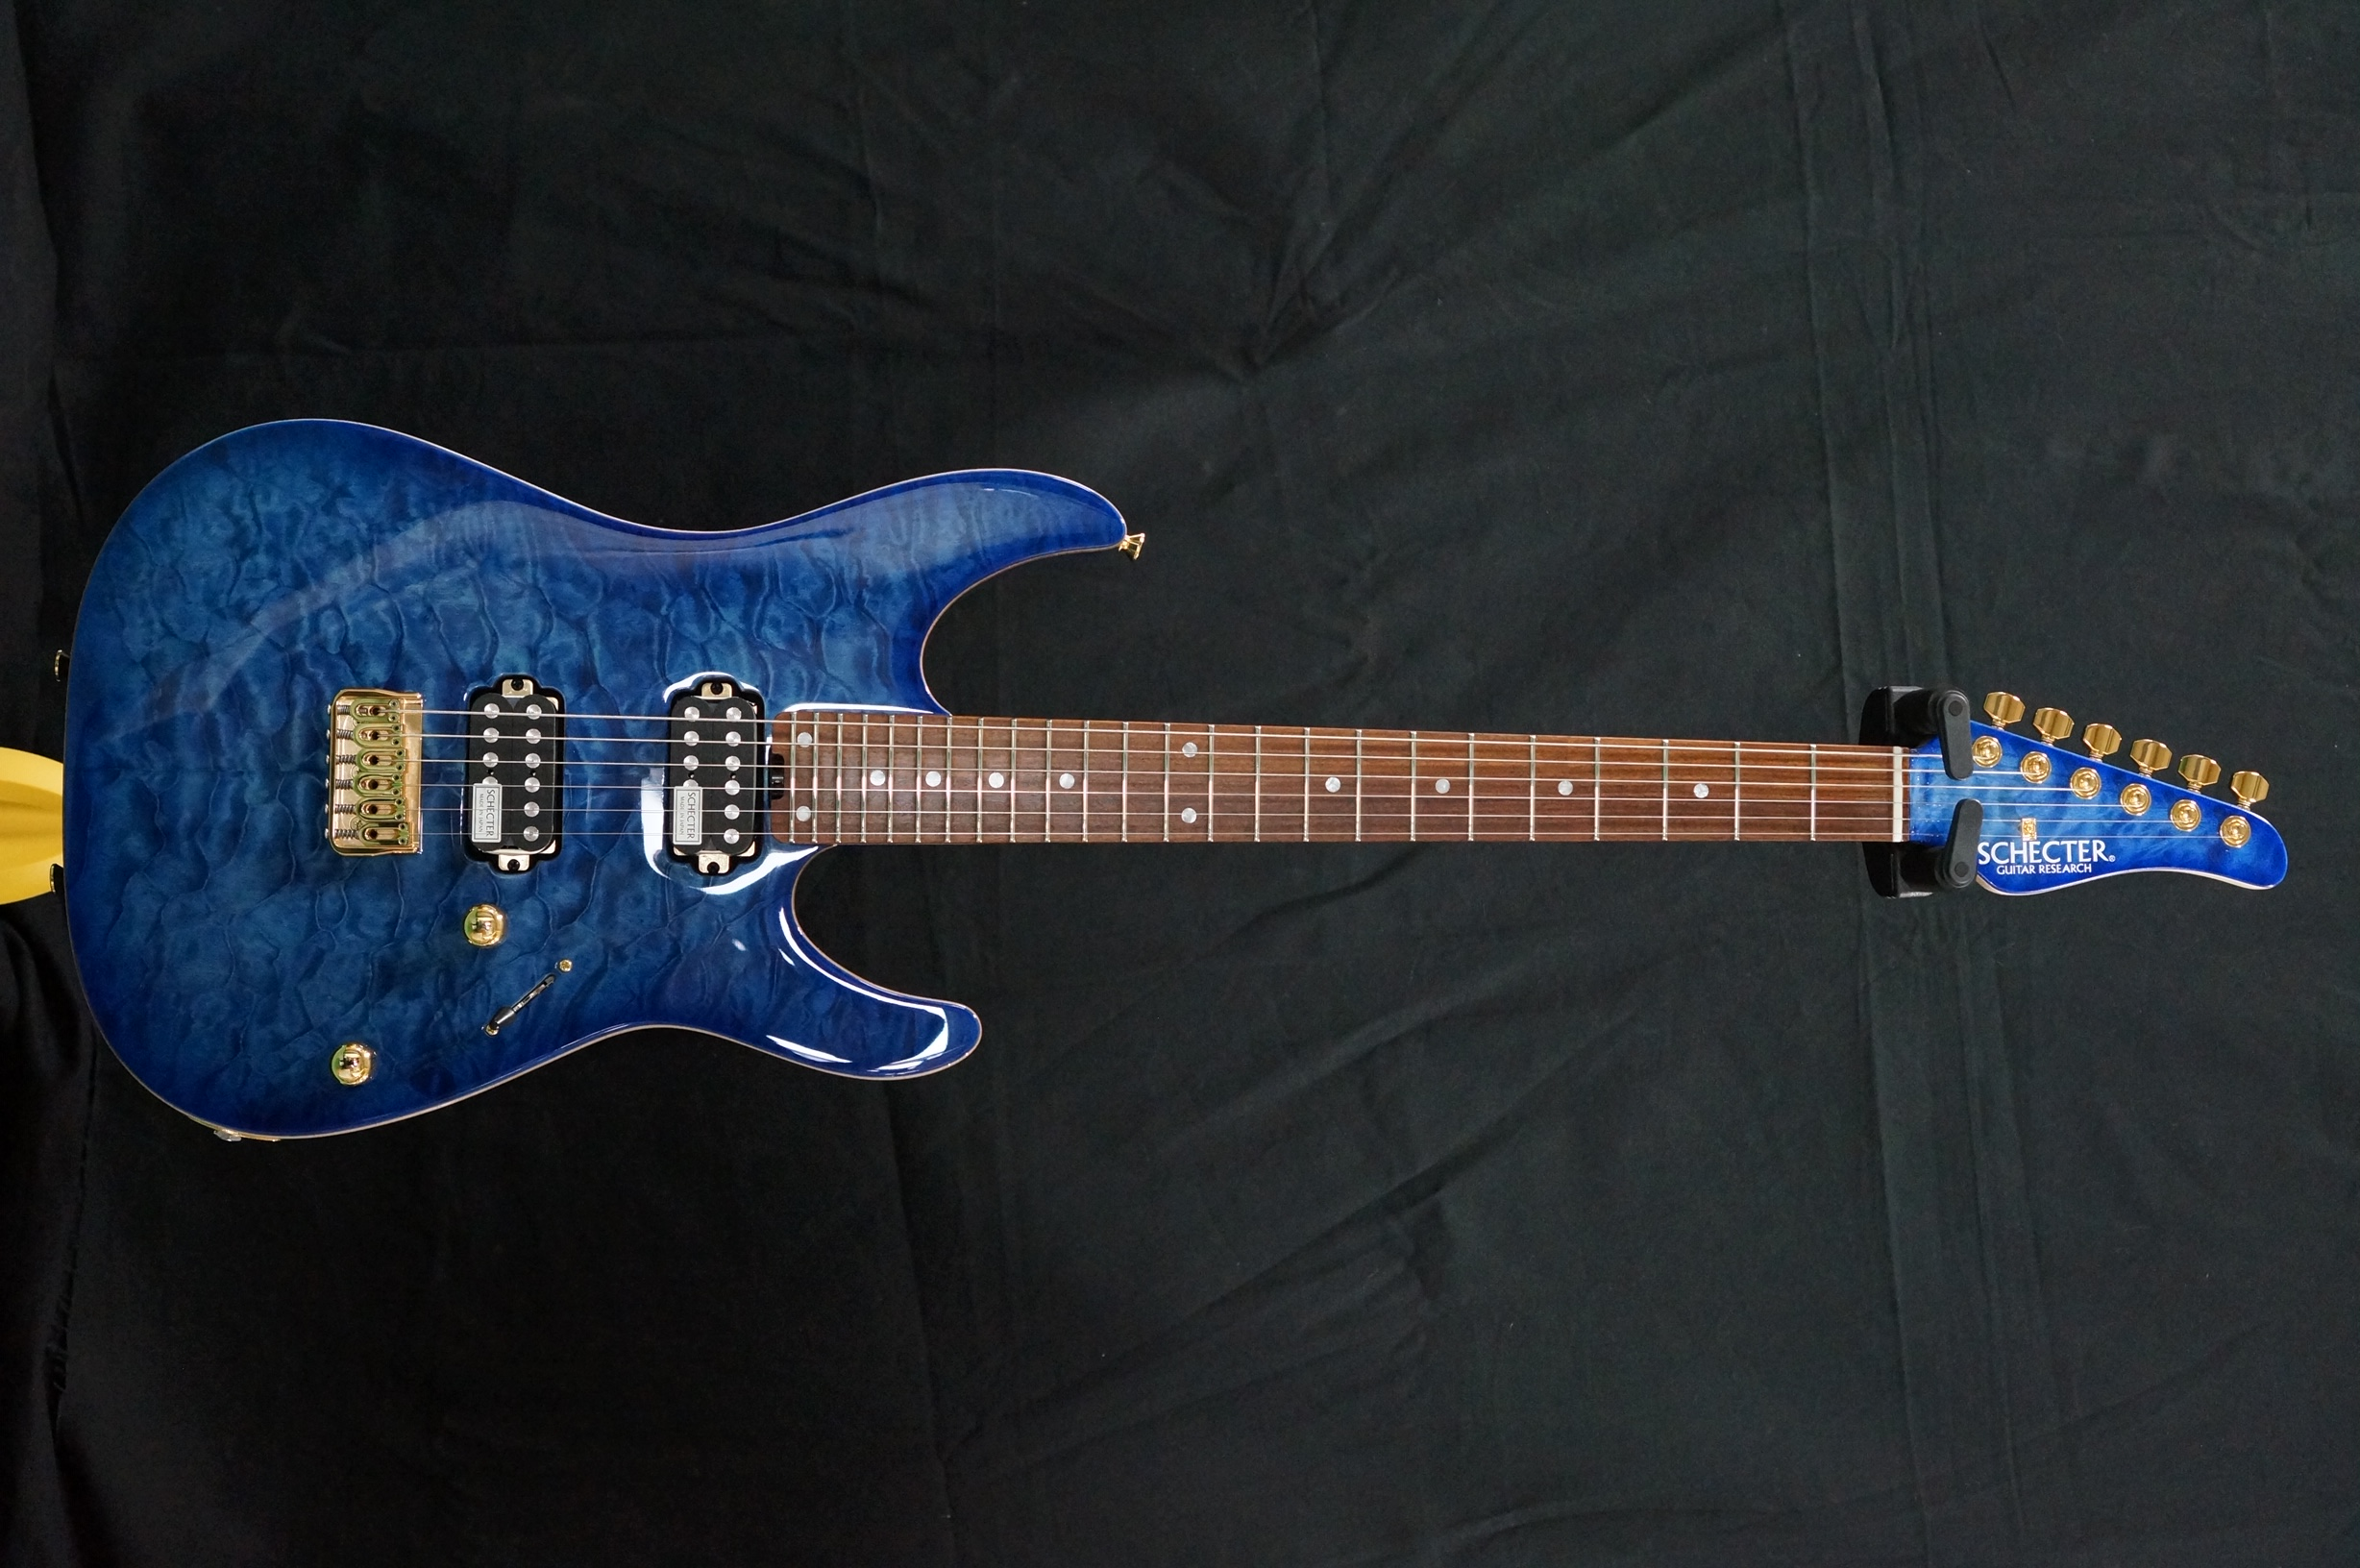 SCHECTER NV-4-24-AS-W